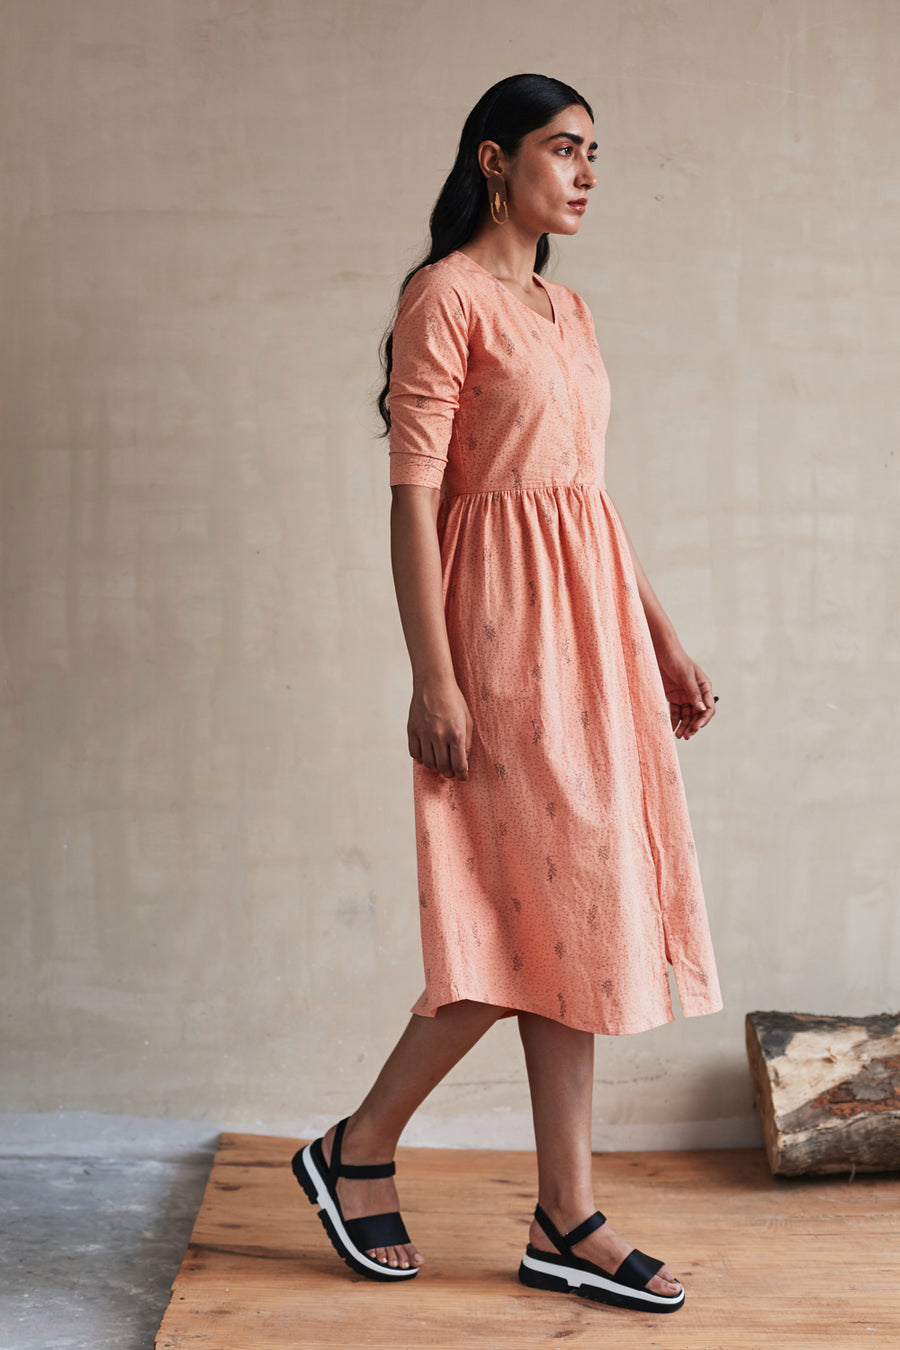 Peachy Day Dress - Ethical made fashion - onlyethikal